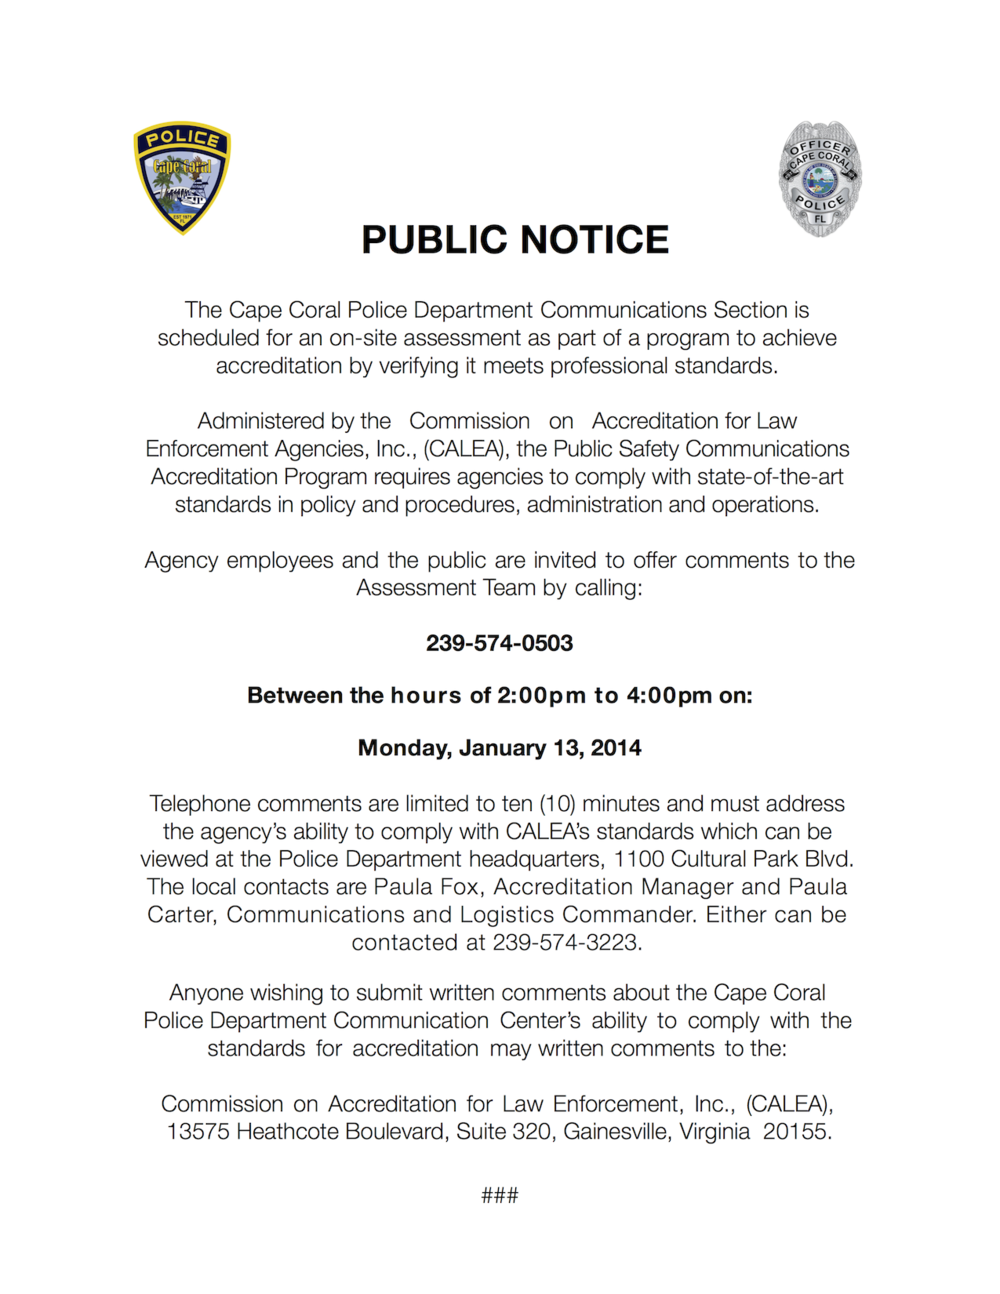 PHOTO:  Public Notice advising the public of an upcoming CALEA Accreditation public-input call-in.  (Photo Courtesy of Cape Coral Police Department)